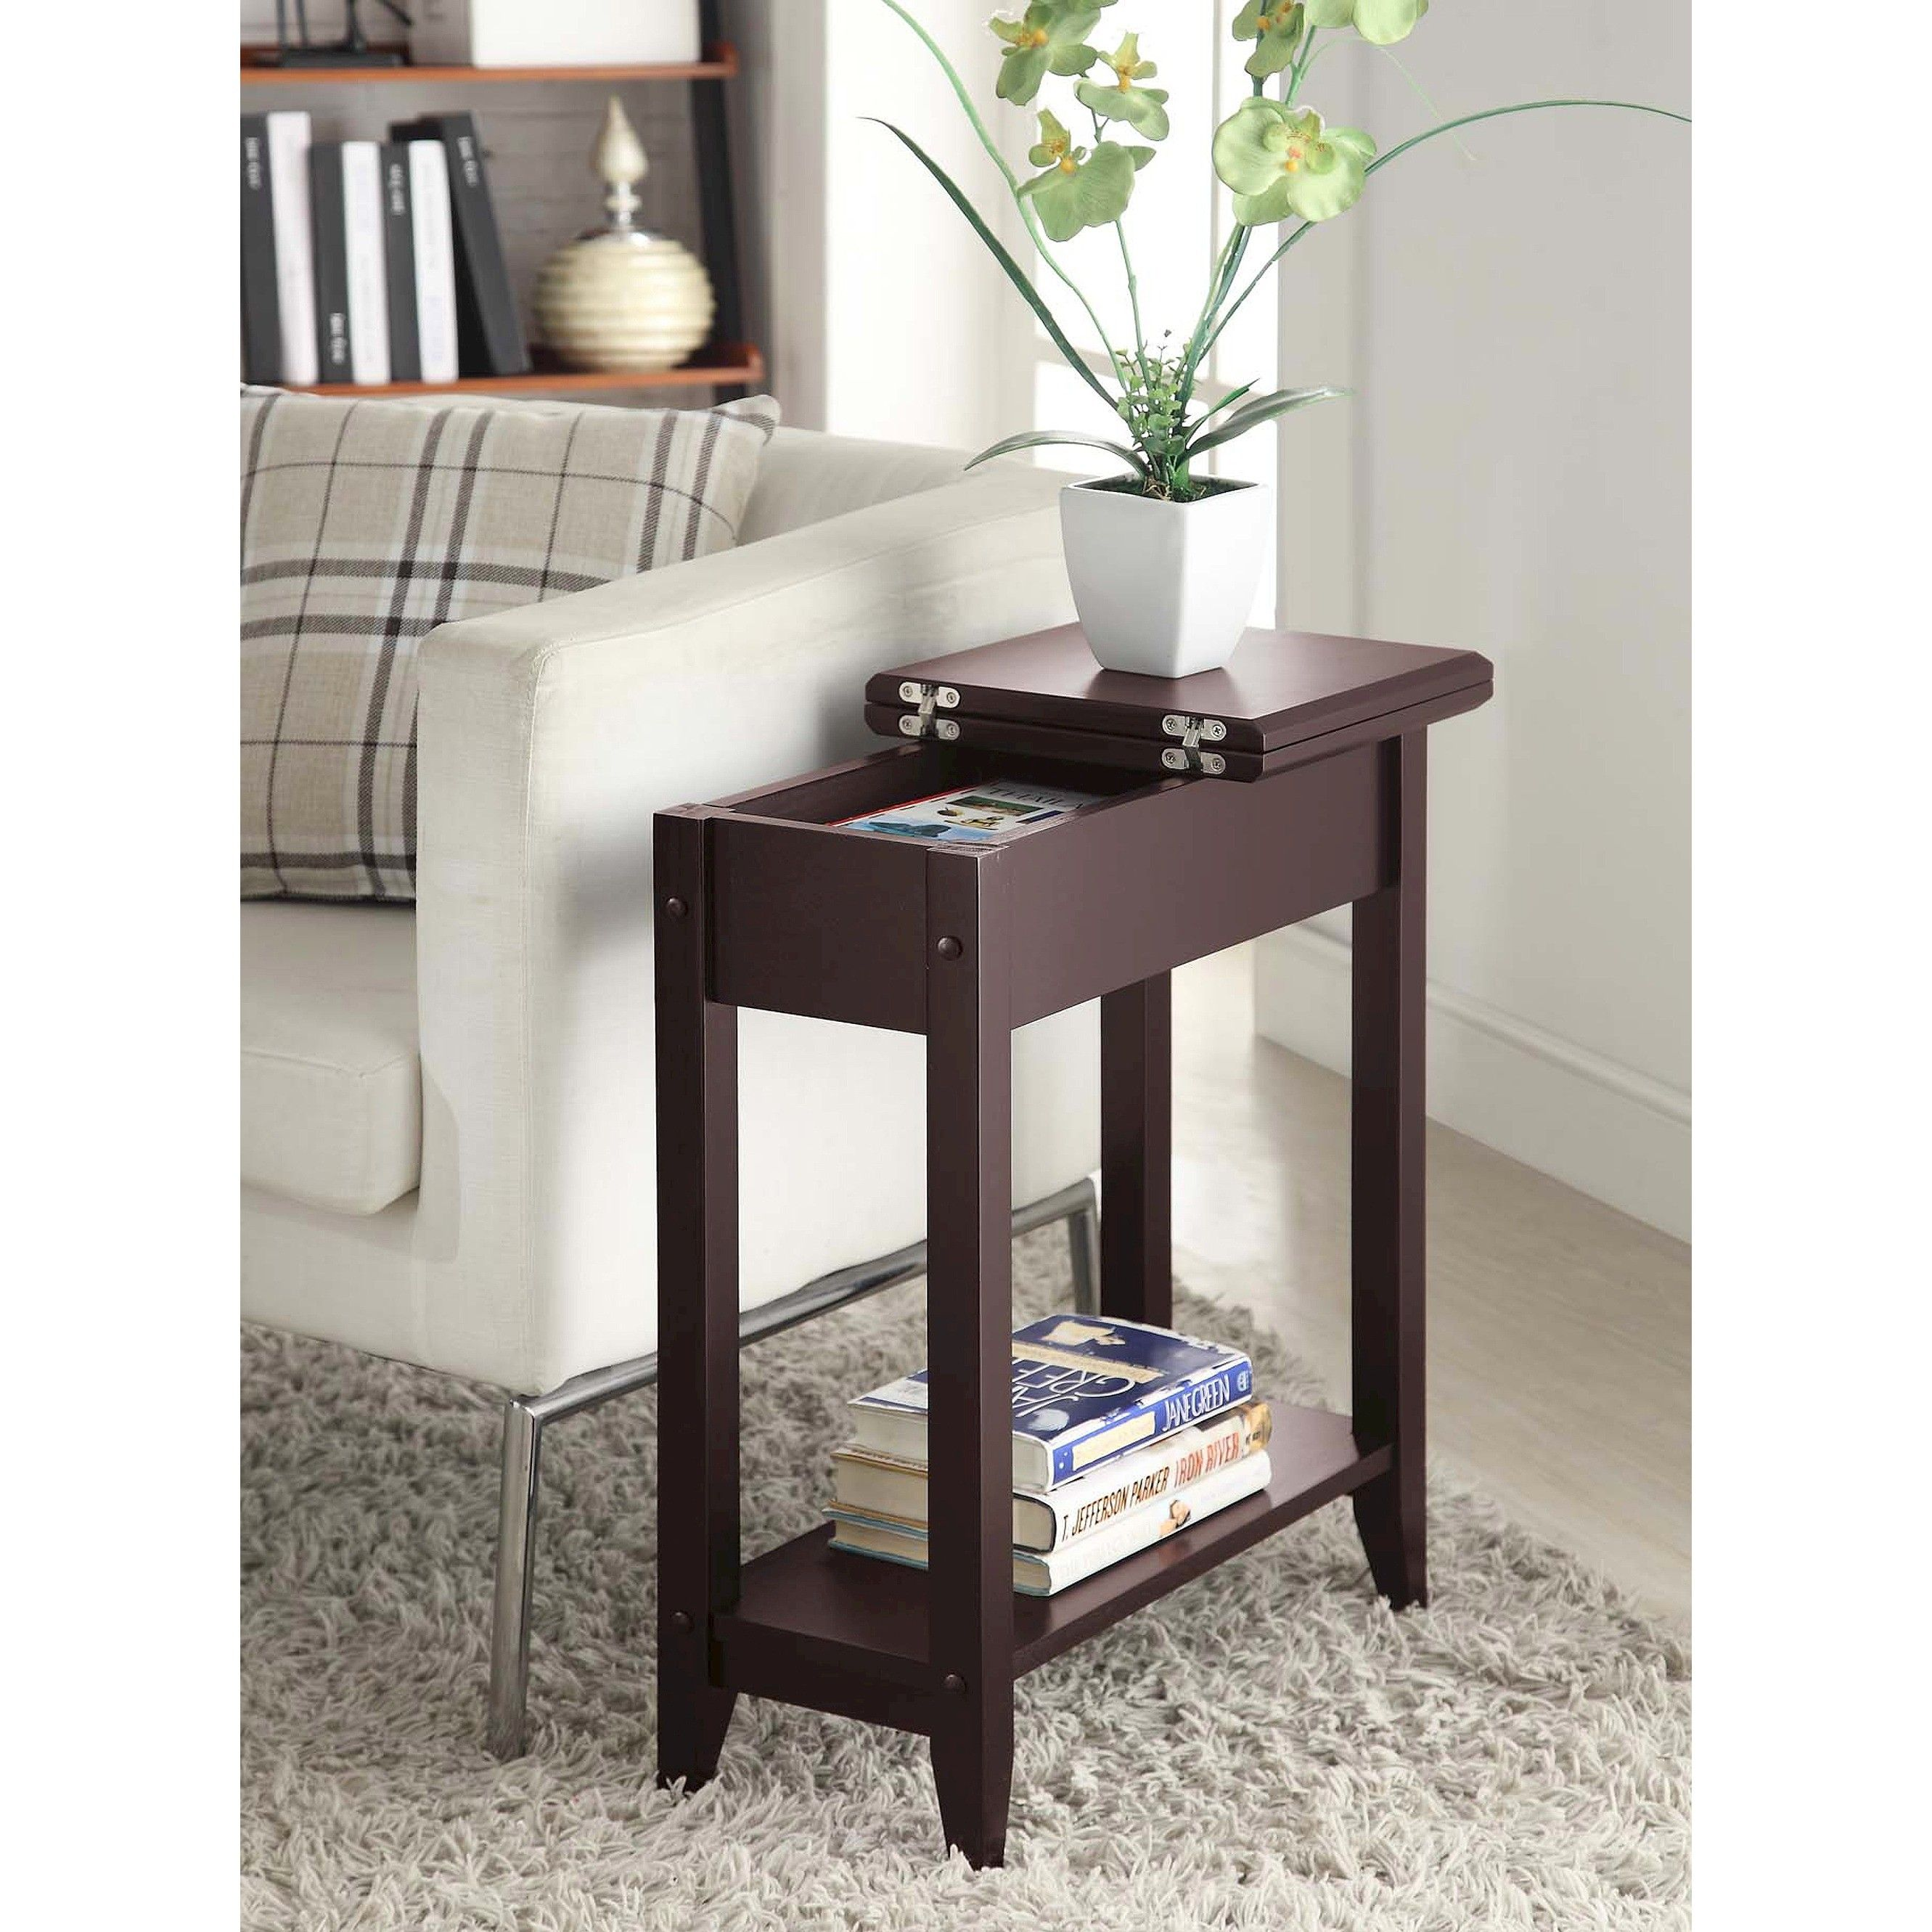 American Heritage Flip Top End Table Espresso Breighton Home Modern Sofa Table End Tables Coffee Table With Drawers